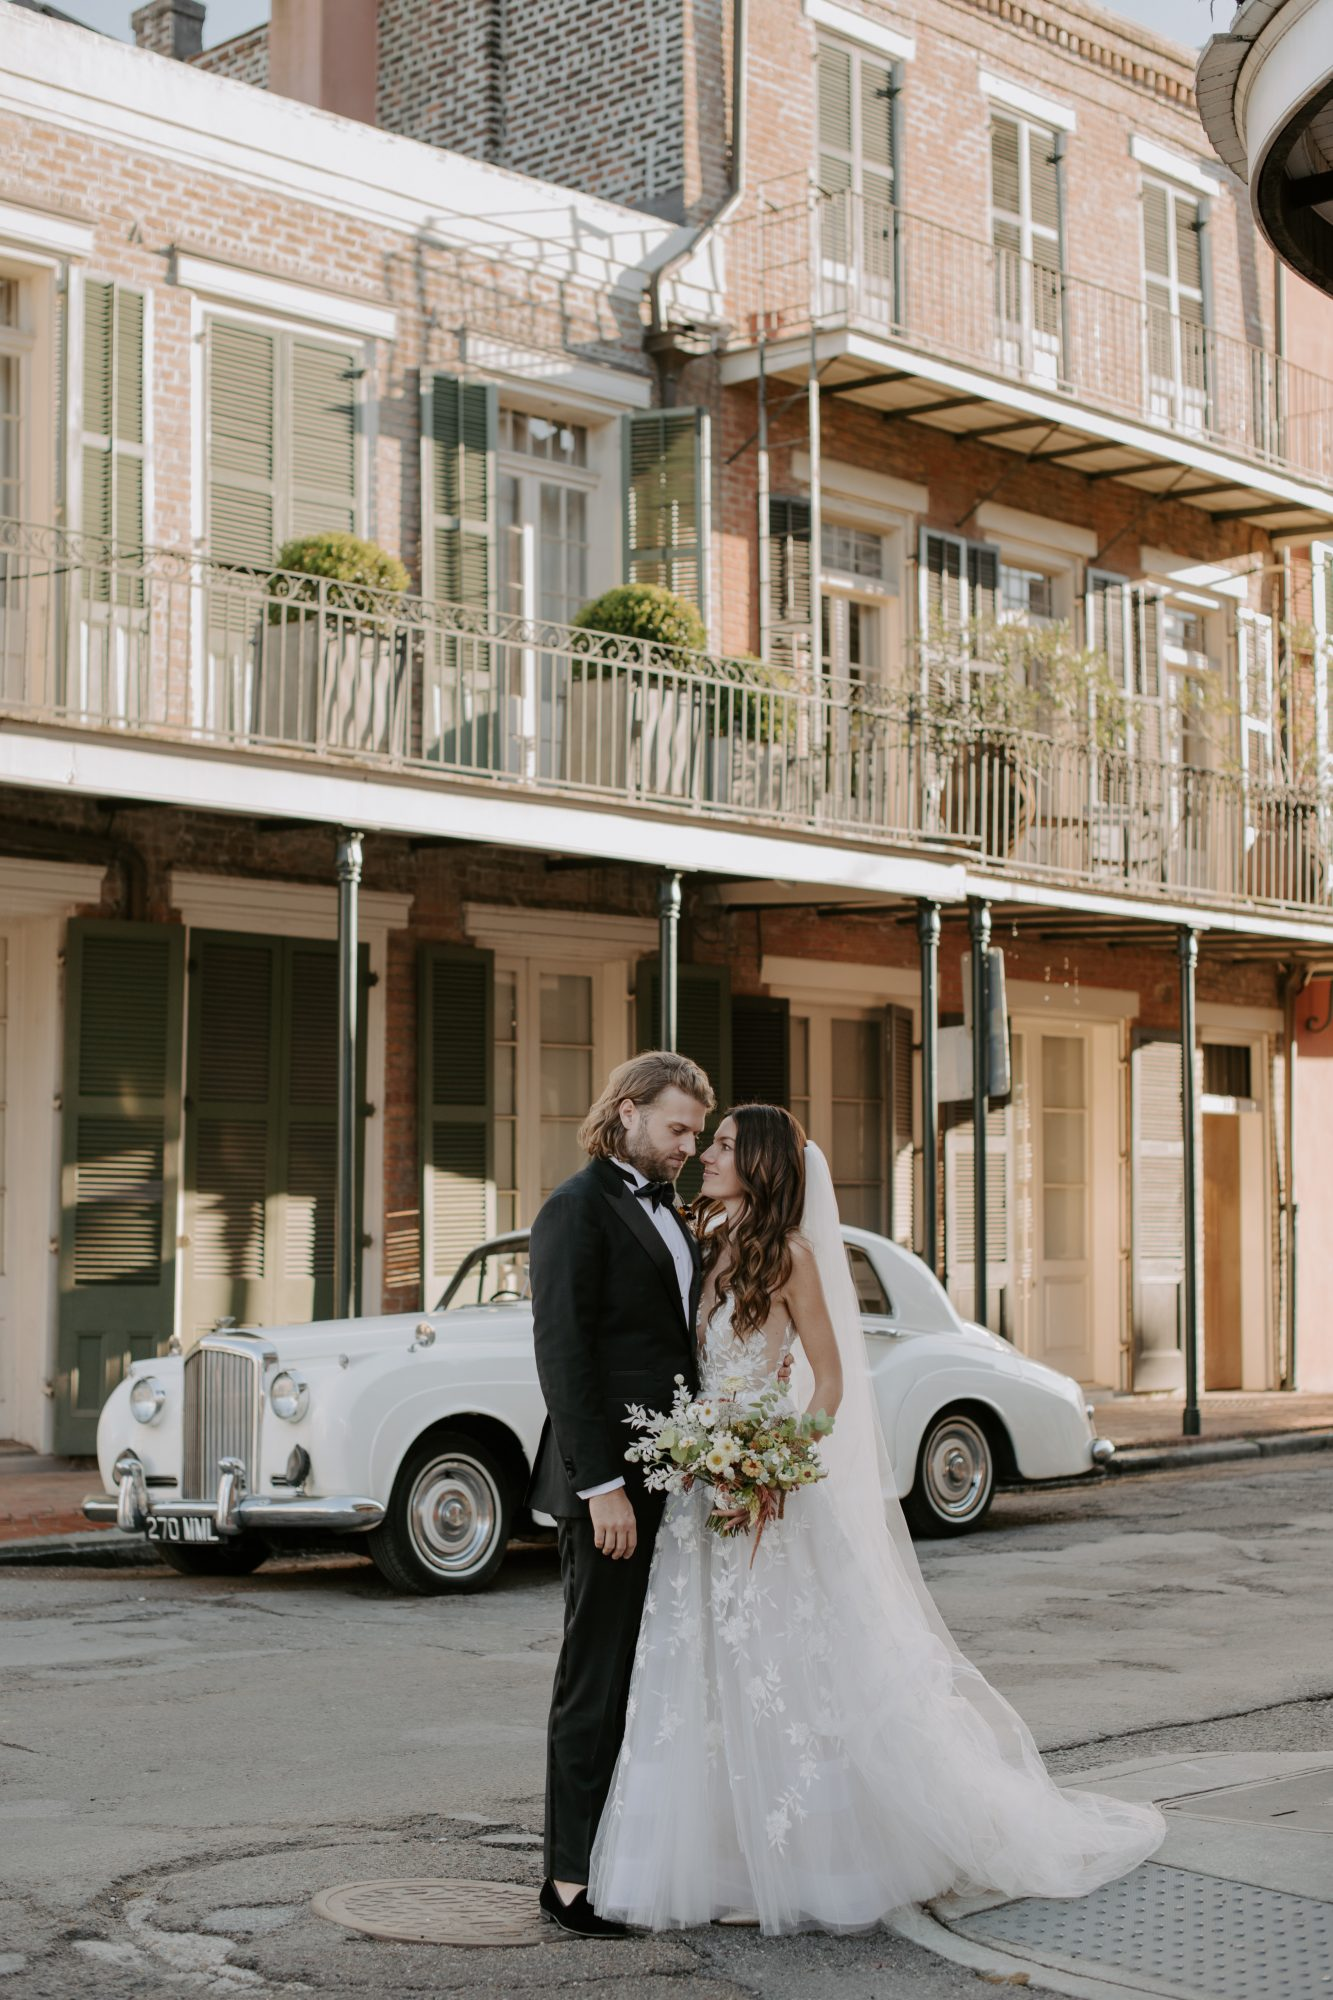 jenny and paul wedding couple posing in the streets of New Orleans in front of vintage car